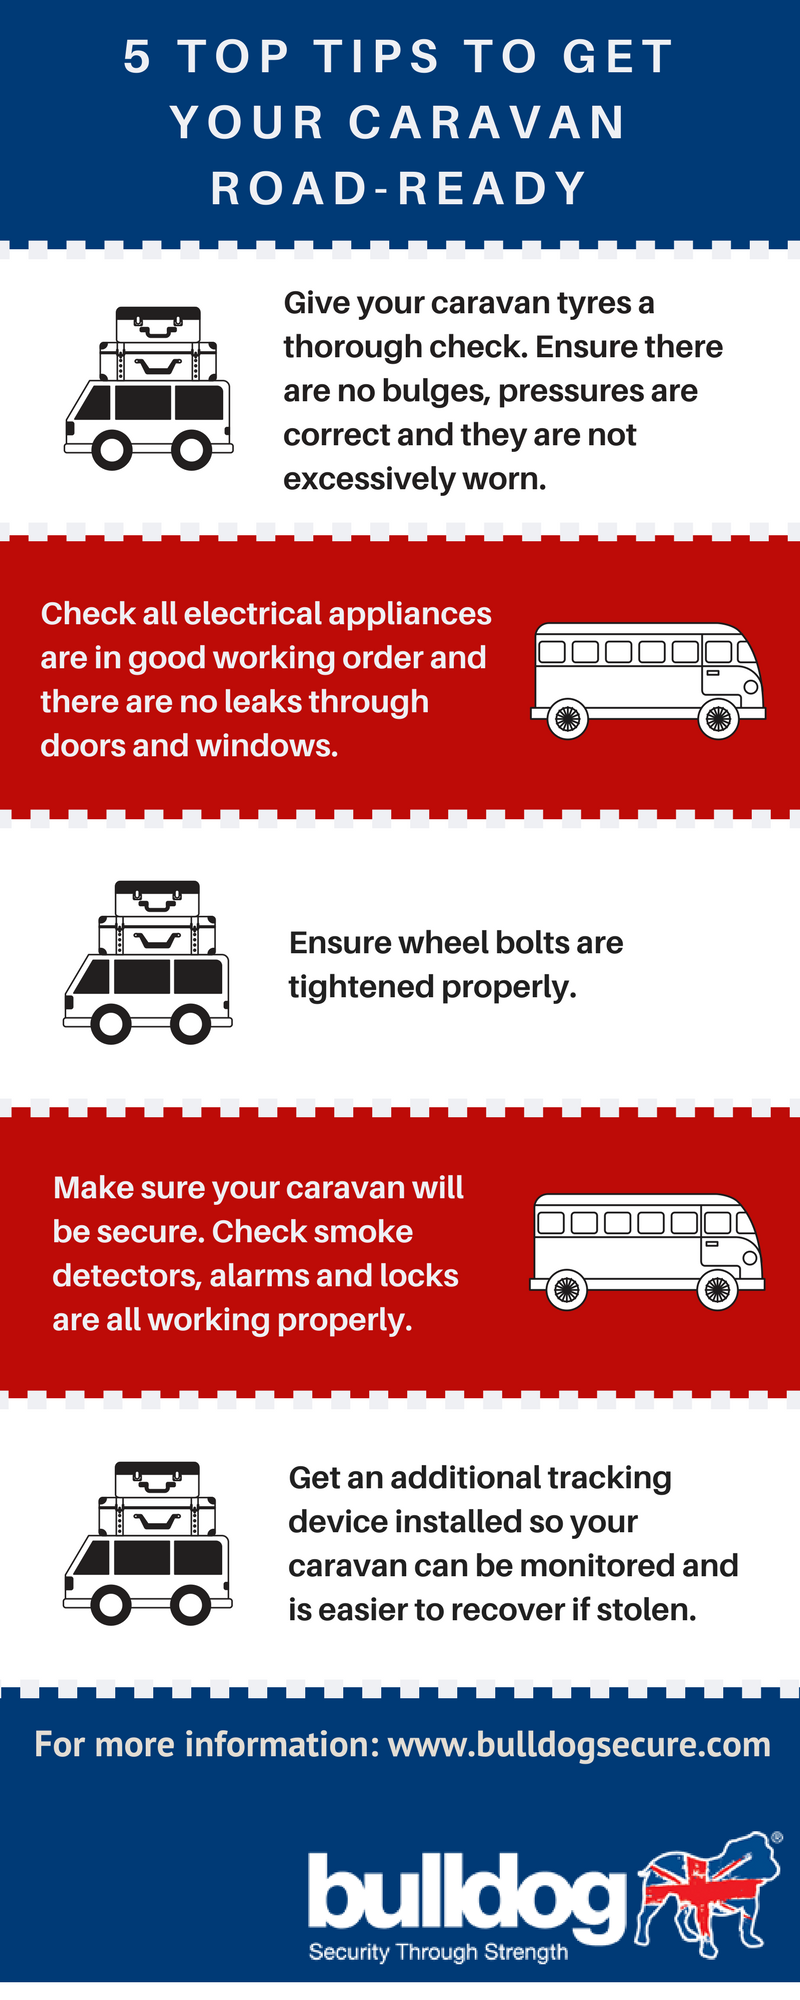 Infographic bulldog Apr 18 - 5 top tips to caravan road ready.png